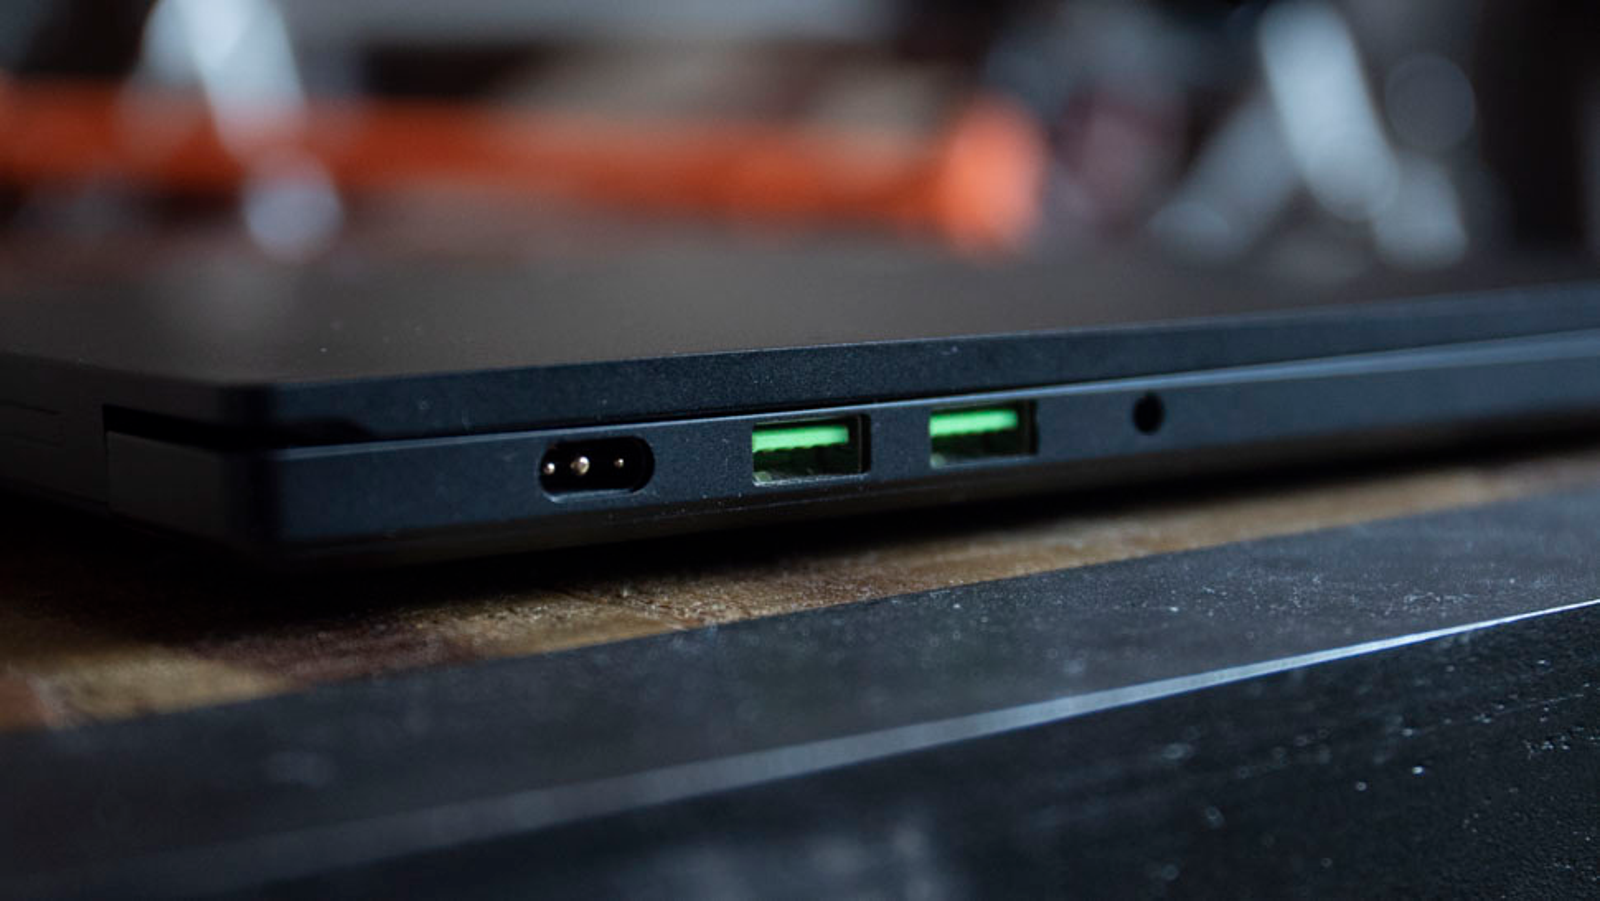 That power port is irritating, but necessary according to Razer.